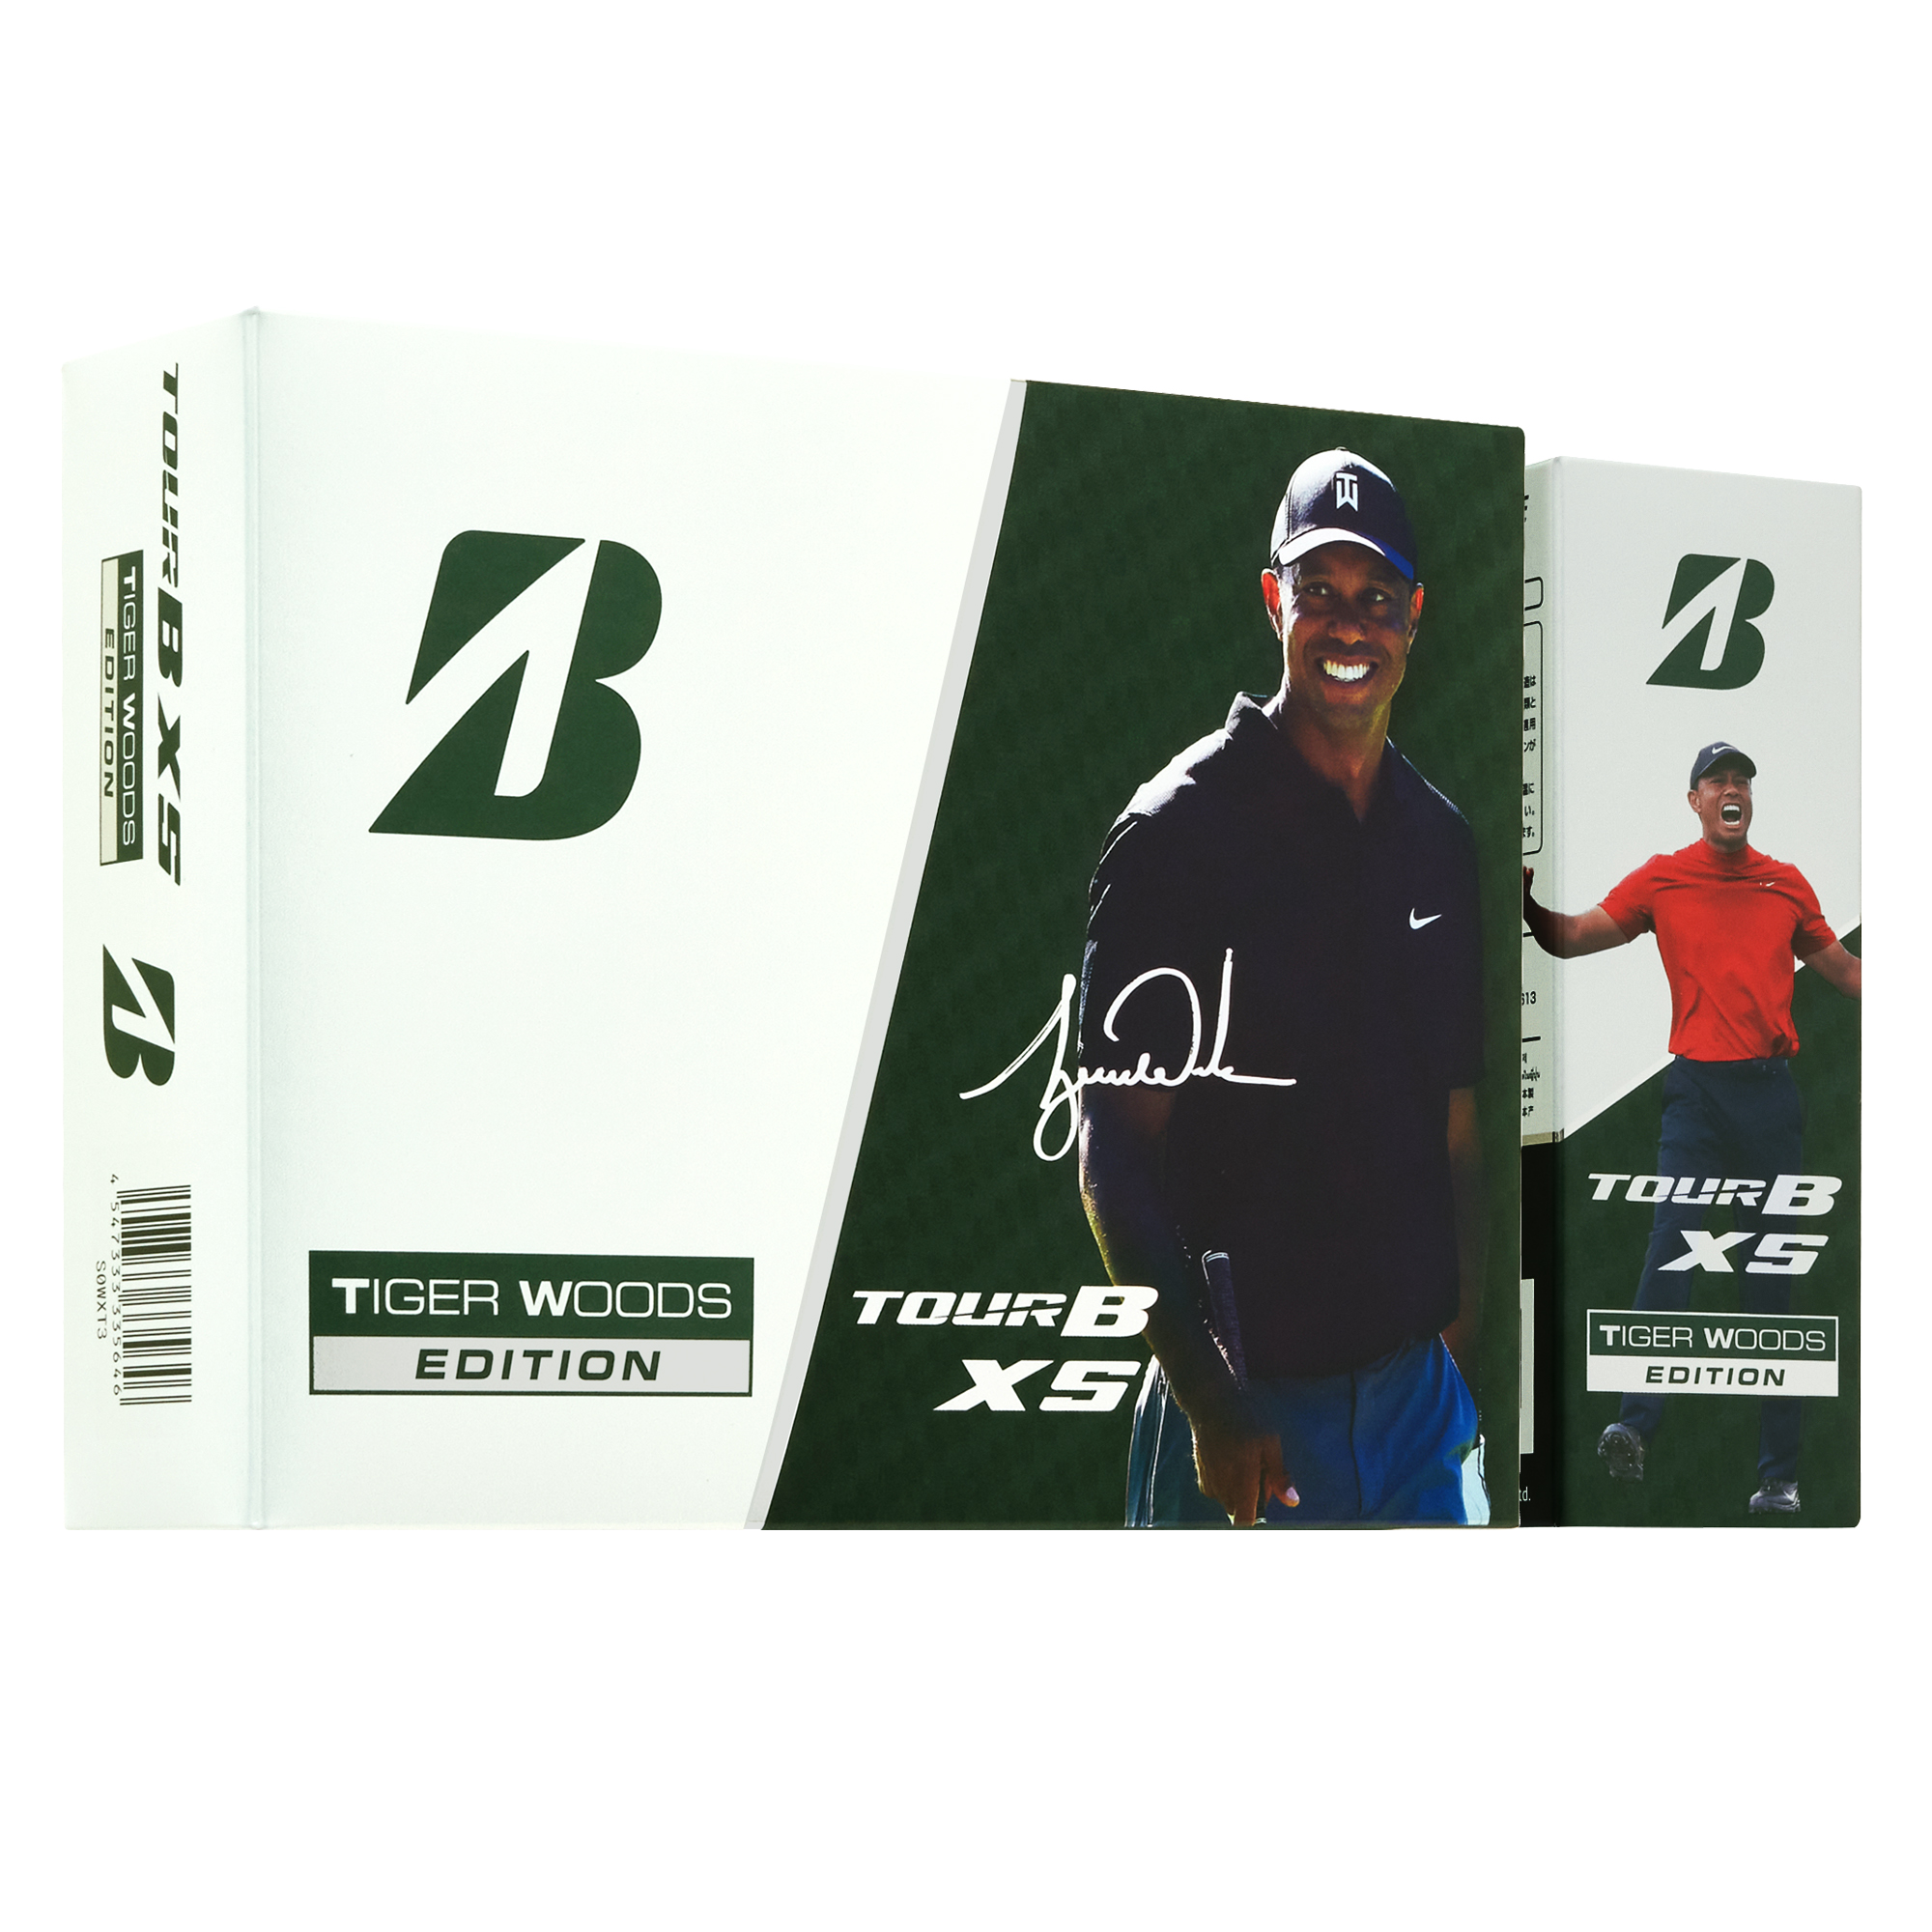 ゴルフボール『TOUR B XS Tiger Woods EDITION』新発売